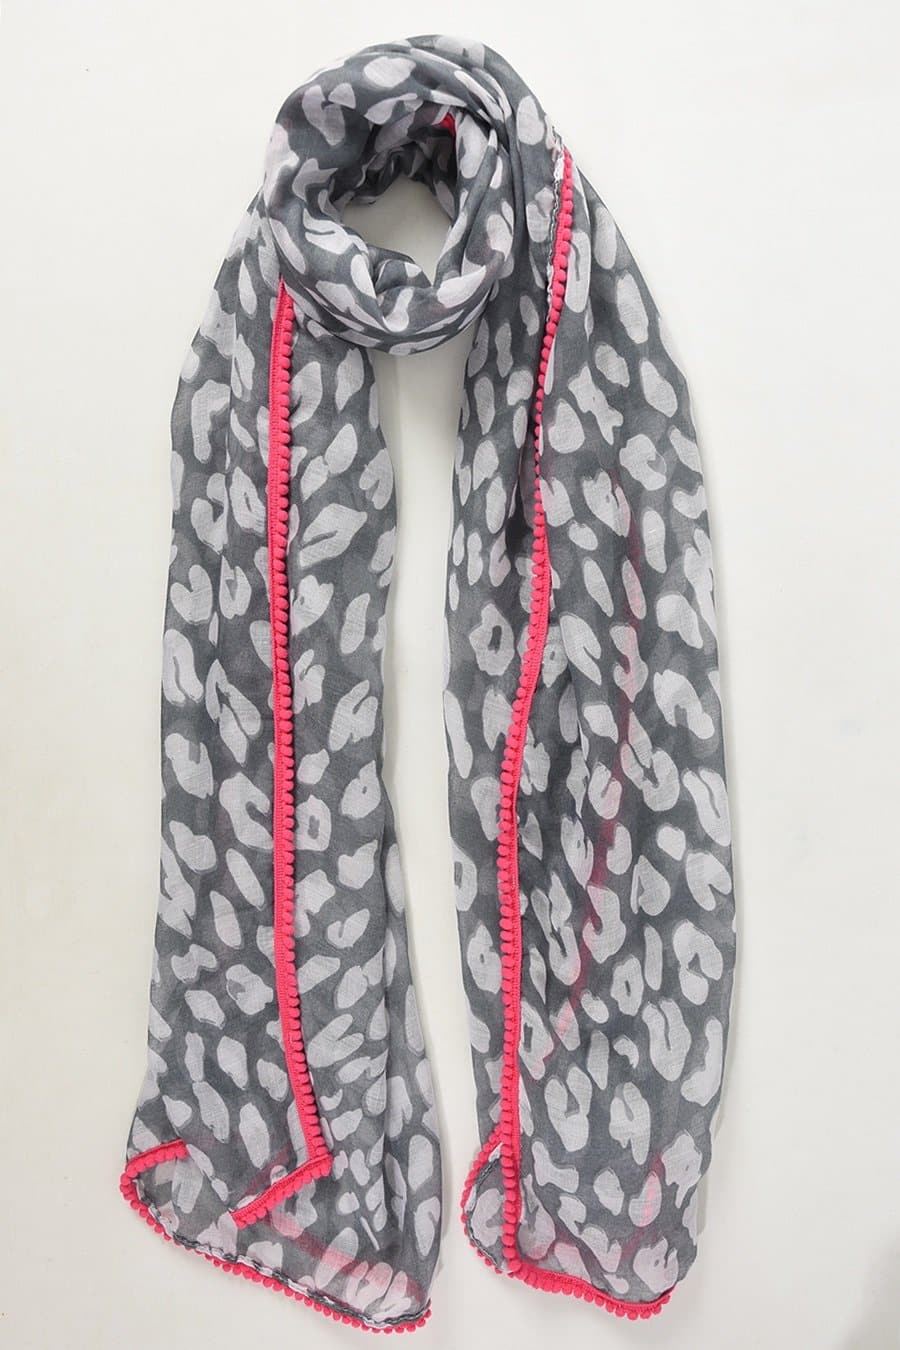 Abstract Animal and Neon Scarf